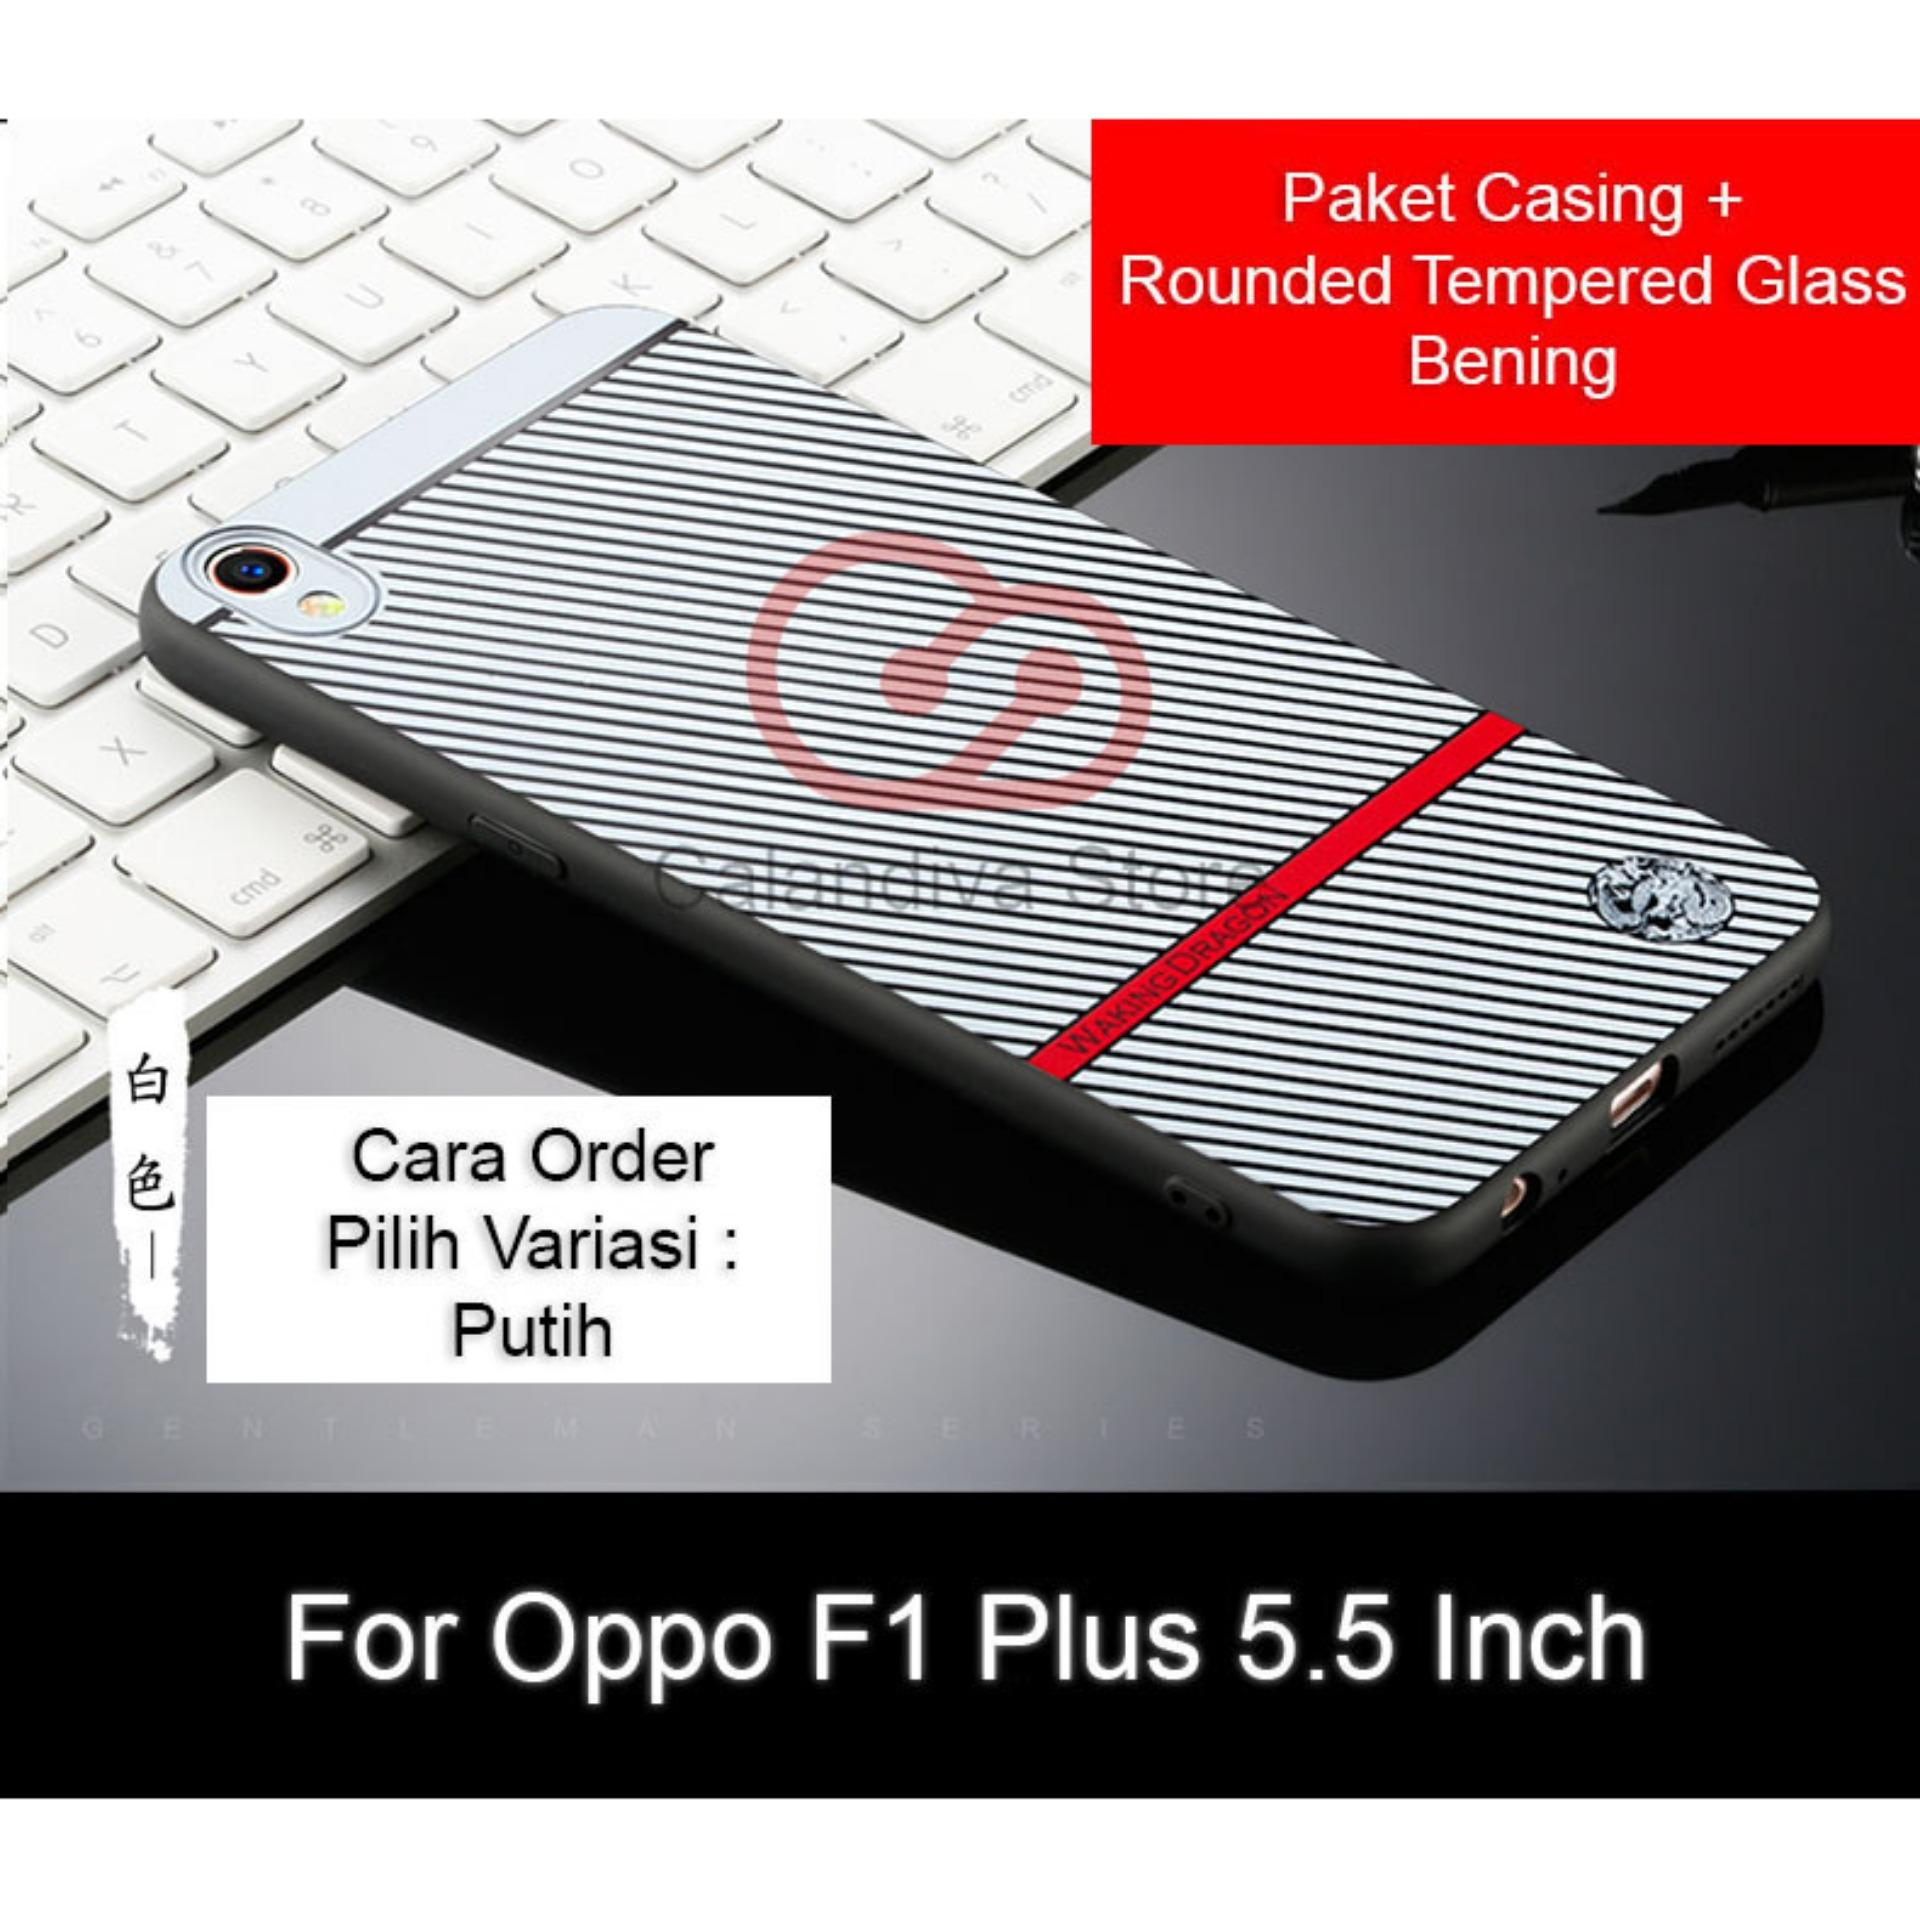 Calandiva Gentleman Series Shockproof Hybrid Case for Oppo F1 Plus / R9 5.5 Inch + Rounded